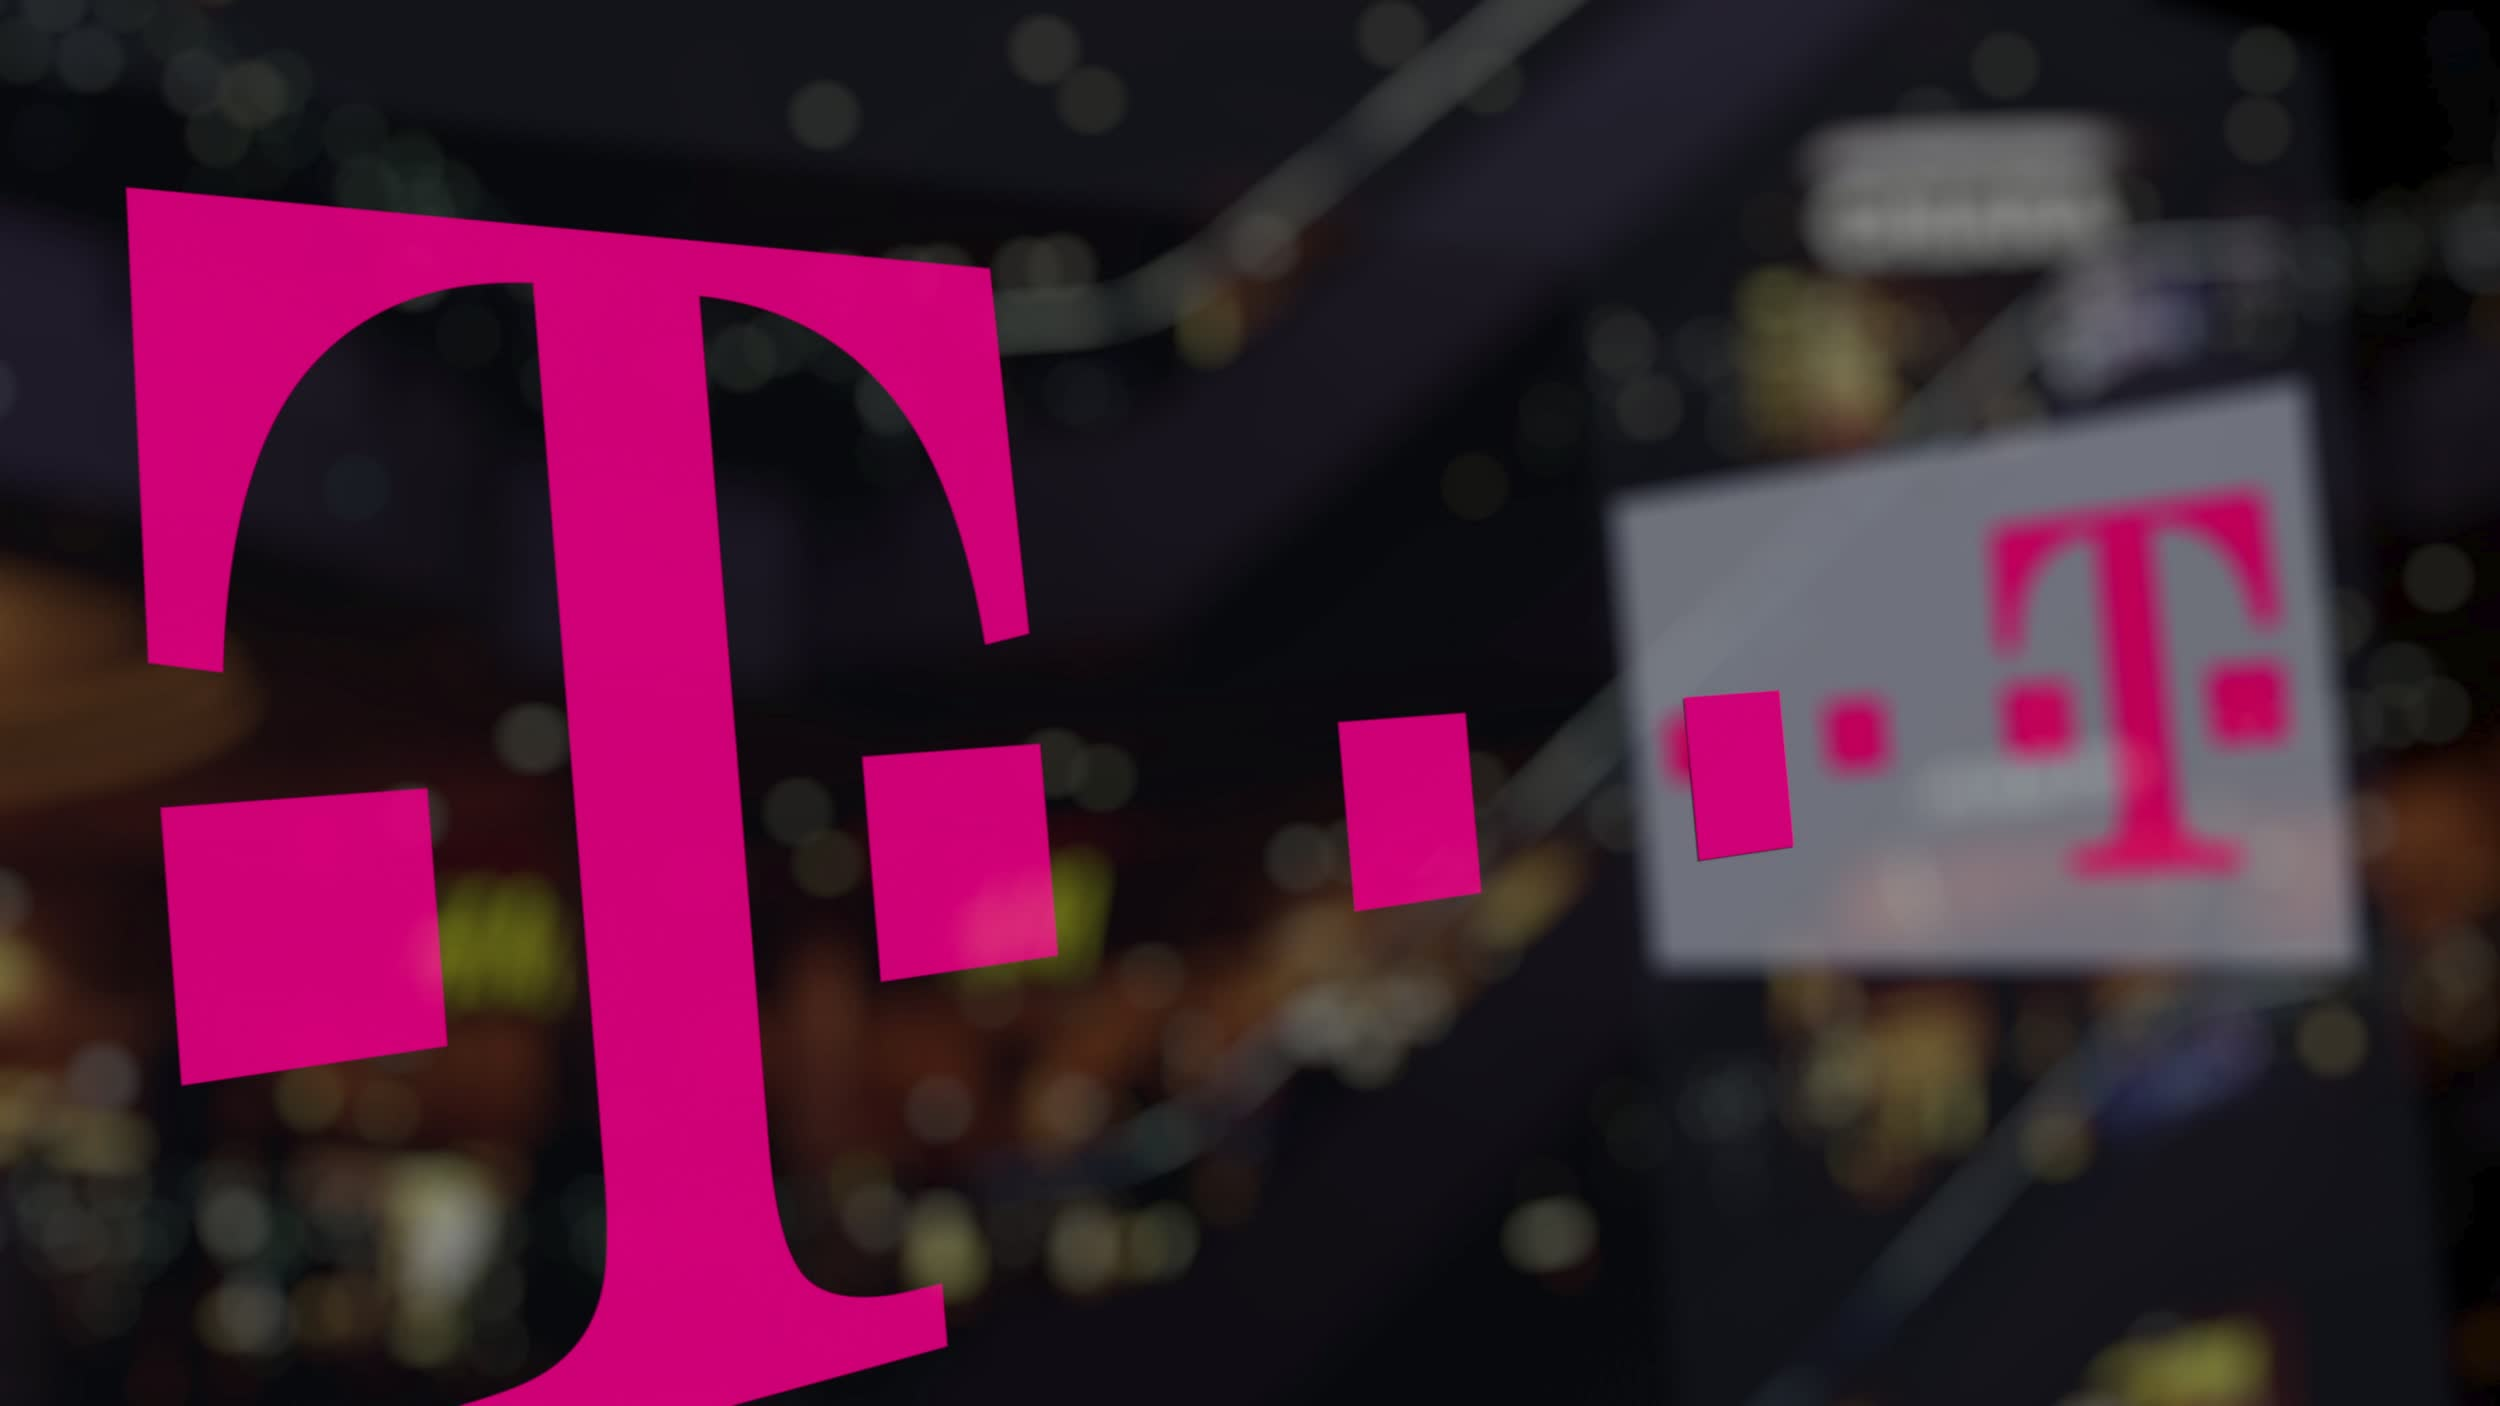 Hacker claims responsibility for T-Mobile breach in WSJ interview, says carrier has 'awful' security